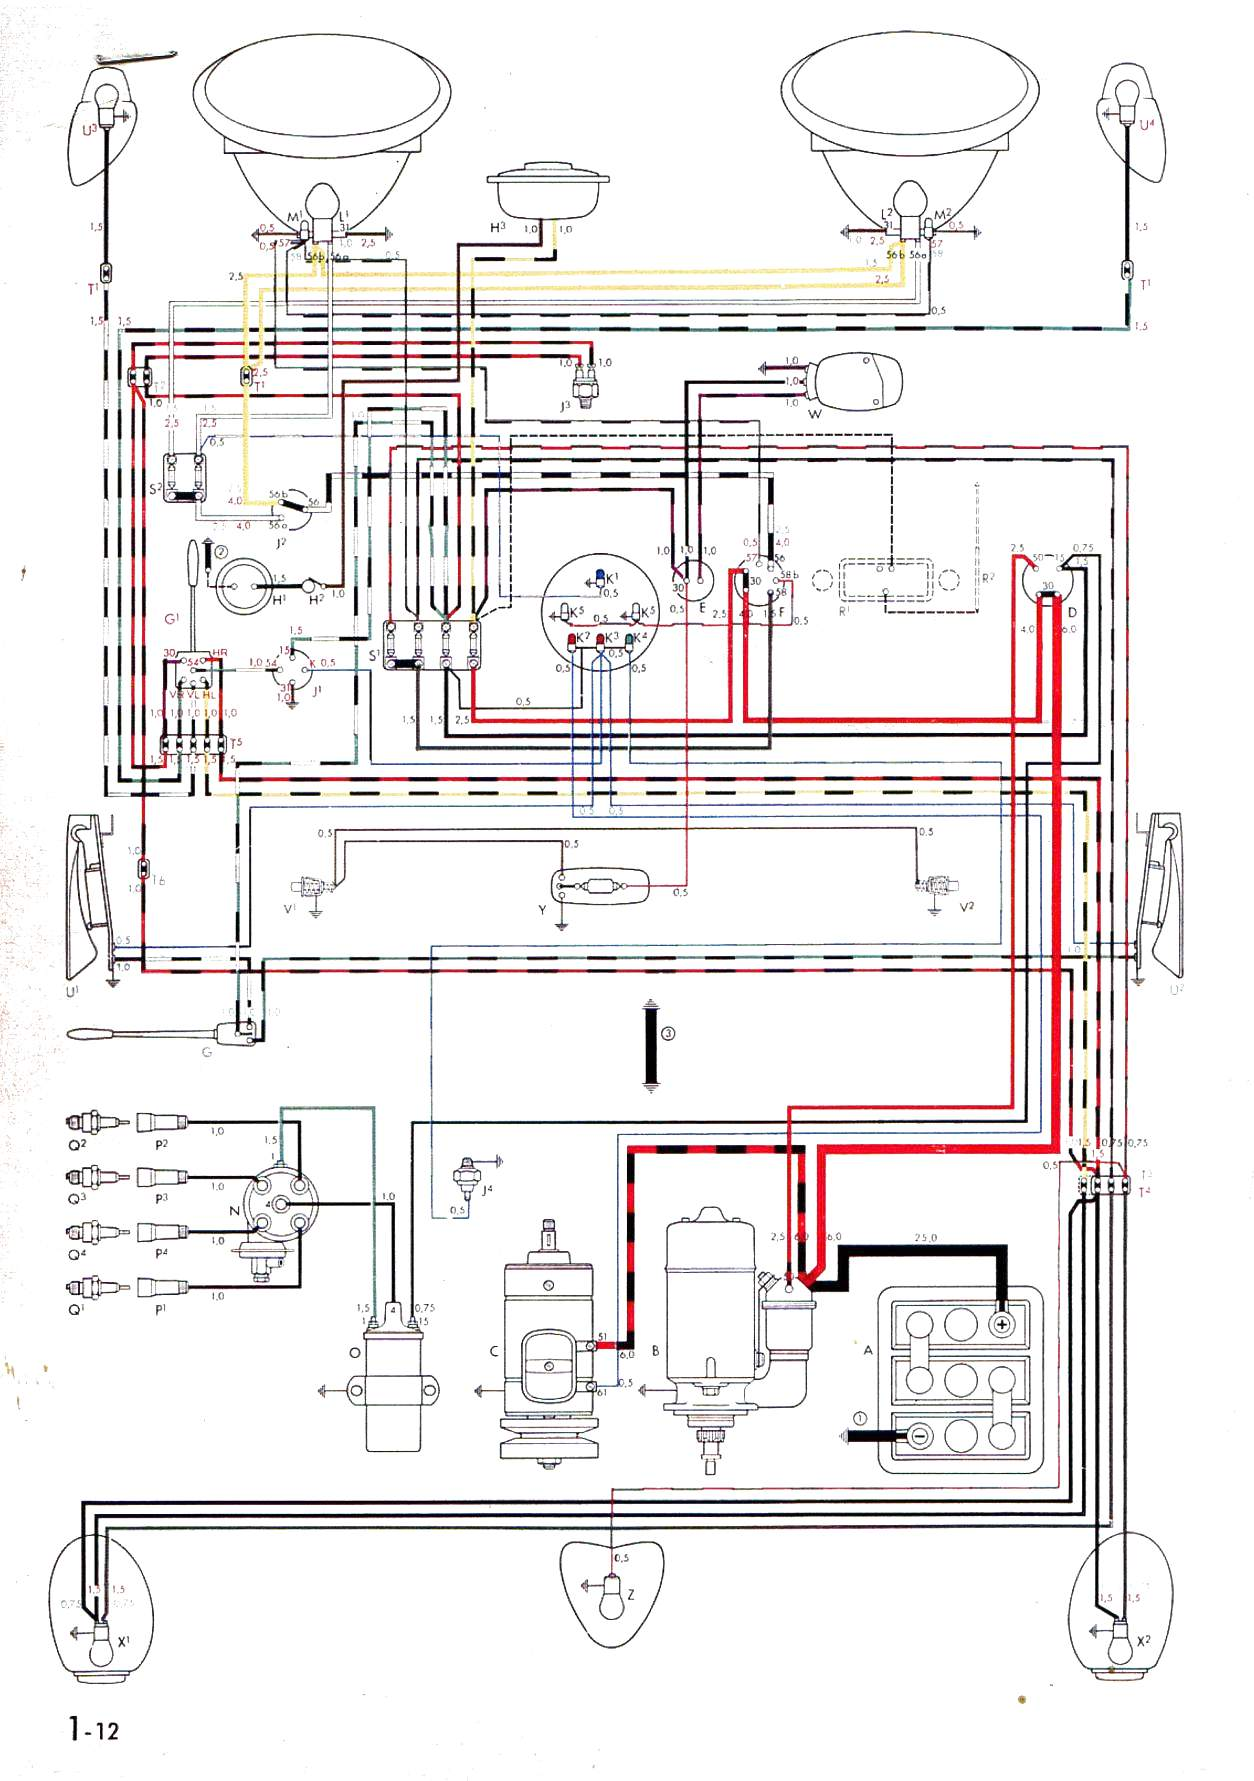 VW Wiring Diagrams on 1963 vw wiring diagram, vw beetle fuel injection diagram, 1999 vw passat wiring diagram, 1967 vw wiring diagram, 1974 vw engine diagram, alfa romeo spider wiring diagram, vw rabbit wiring-diagram, vw turn signal wiring diagram, vw distributor diagram, fiat uno wiring diagram, vw buggy wiring-diagram, volkswagen fuel diagram, 1973 vw wiring diagram, porsche cayenne wiring diagram, vw starter wiring diagram, vw type 2 wiring diagram, vw beetle engine diagram, 68 vw wiring diagram, type 3 wiring diagram, vw light switch wiring,